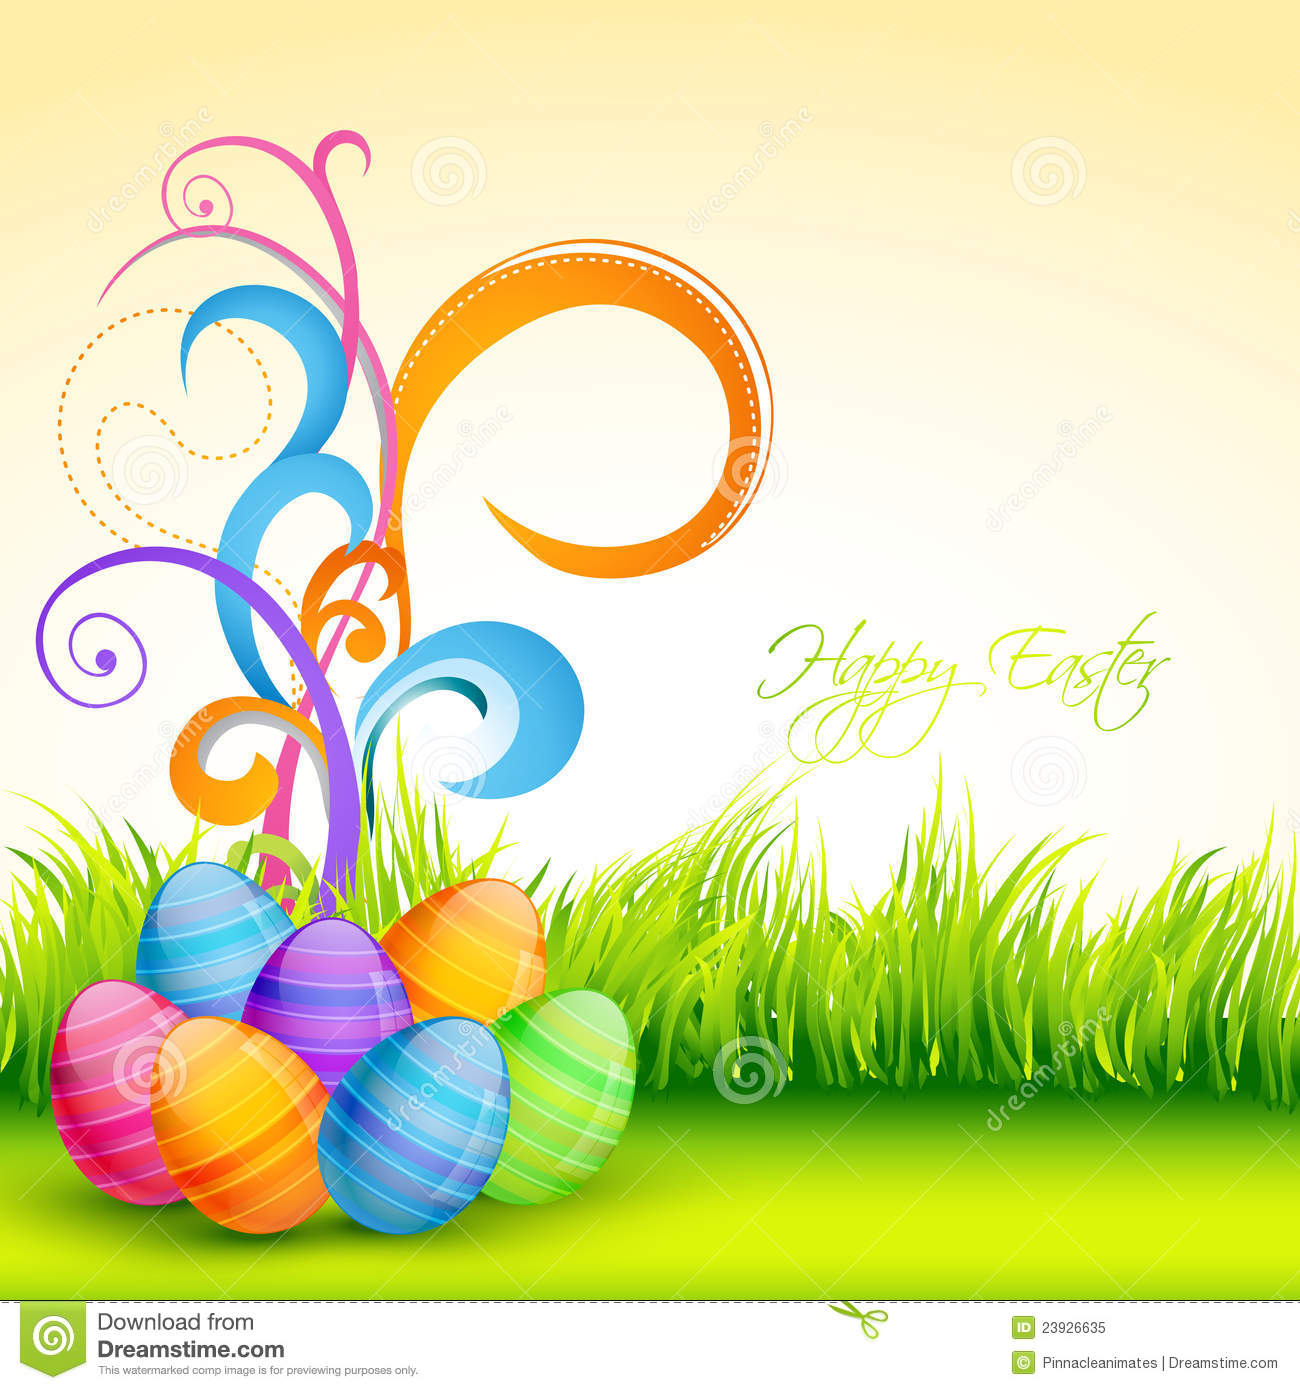 Free Easter Flower Vector